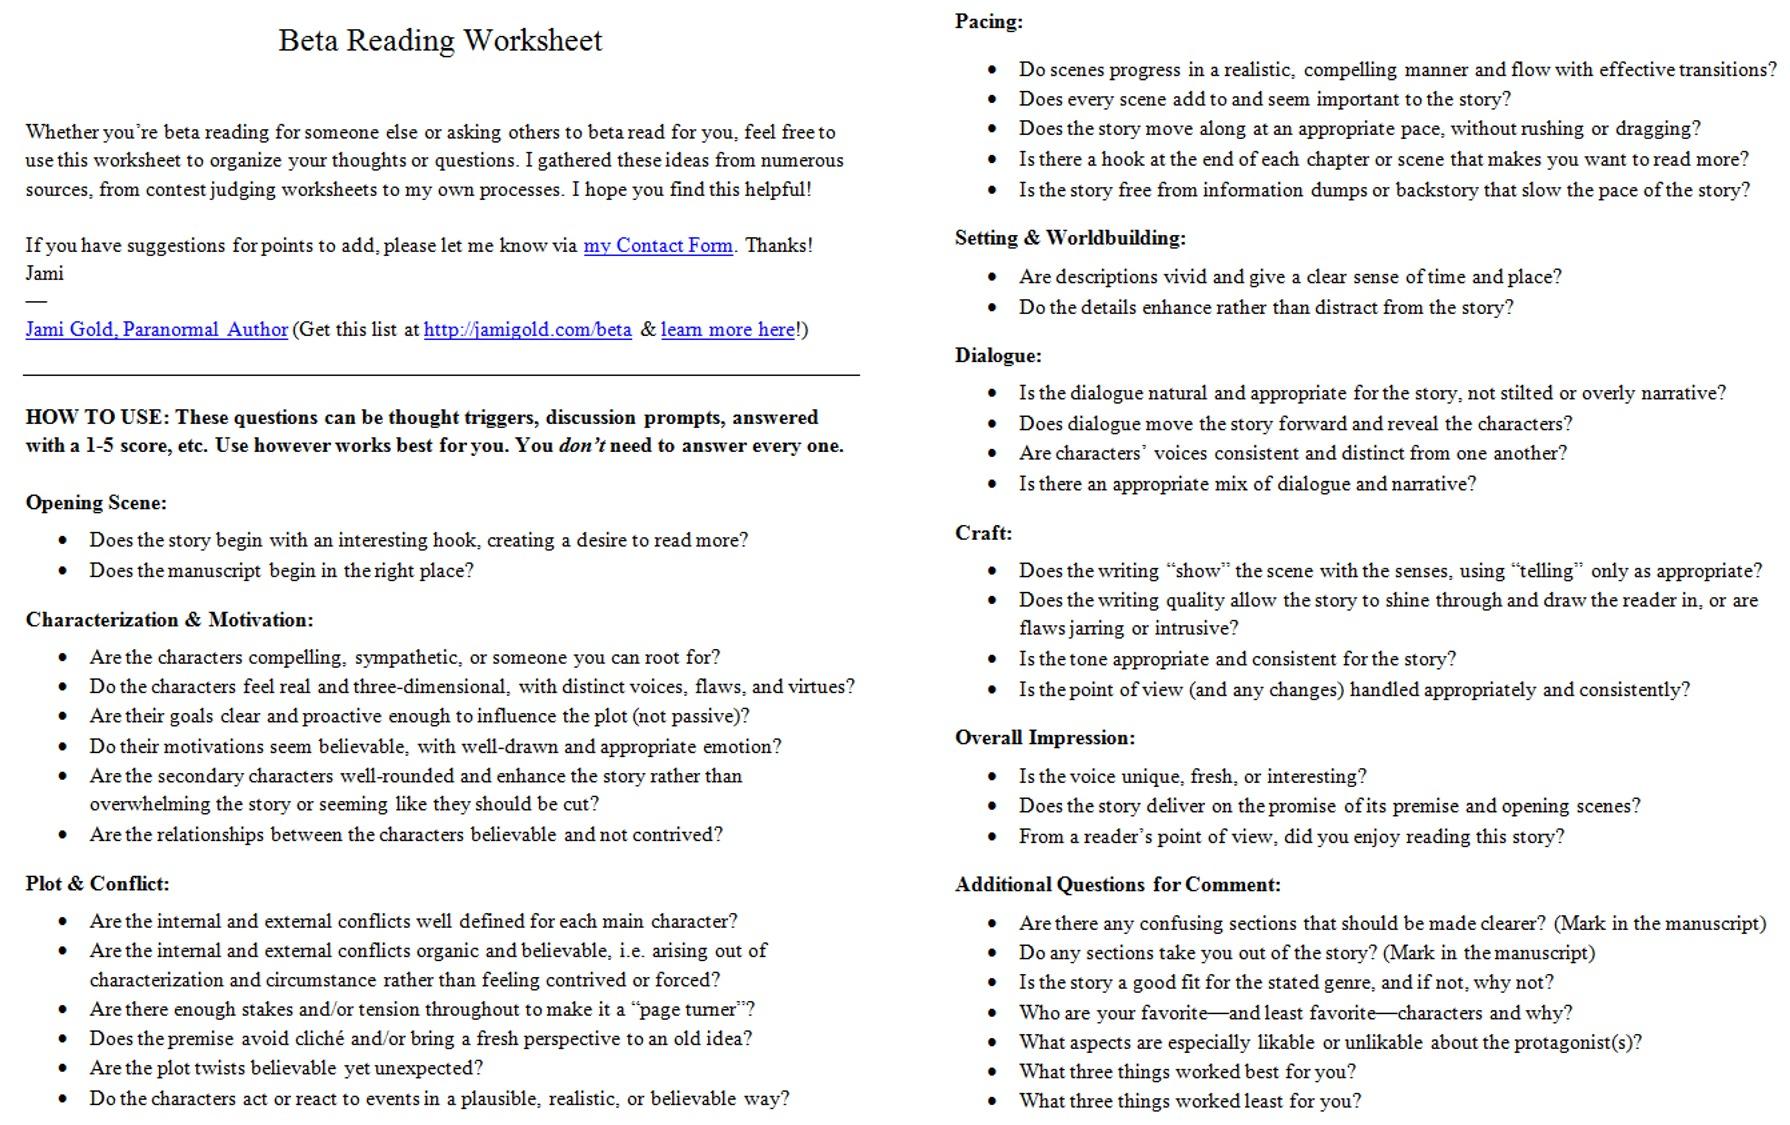 Weirdmailus  Stunning Worksheets For Writers  Jami Gold Paranormal Author With Luxury Screen Shot Of The Twopage Beta Reading Worksheet With Beauteous  Digit By  Digit Division Worksheets Also Percentages Ks Worksheets In Addition Measurement Worksheets Middle School And Percentage Problem Solving Worksheets As Well As Shapes Matching Worksheets Additionally Worksheets On Health From Jamigoldcom With Weirdmailus  Luxury Worksheets For Writers  Jami Gold Paranormal Author With Beauteous Screen Shot Of The Twopage Beta Reading Worksheet And Stunning  Digit By  Digit Division Worksheets Also Percentages Ks Worksheets In Addition Measurement Worksheets Middle School From Jamigoldcom